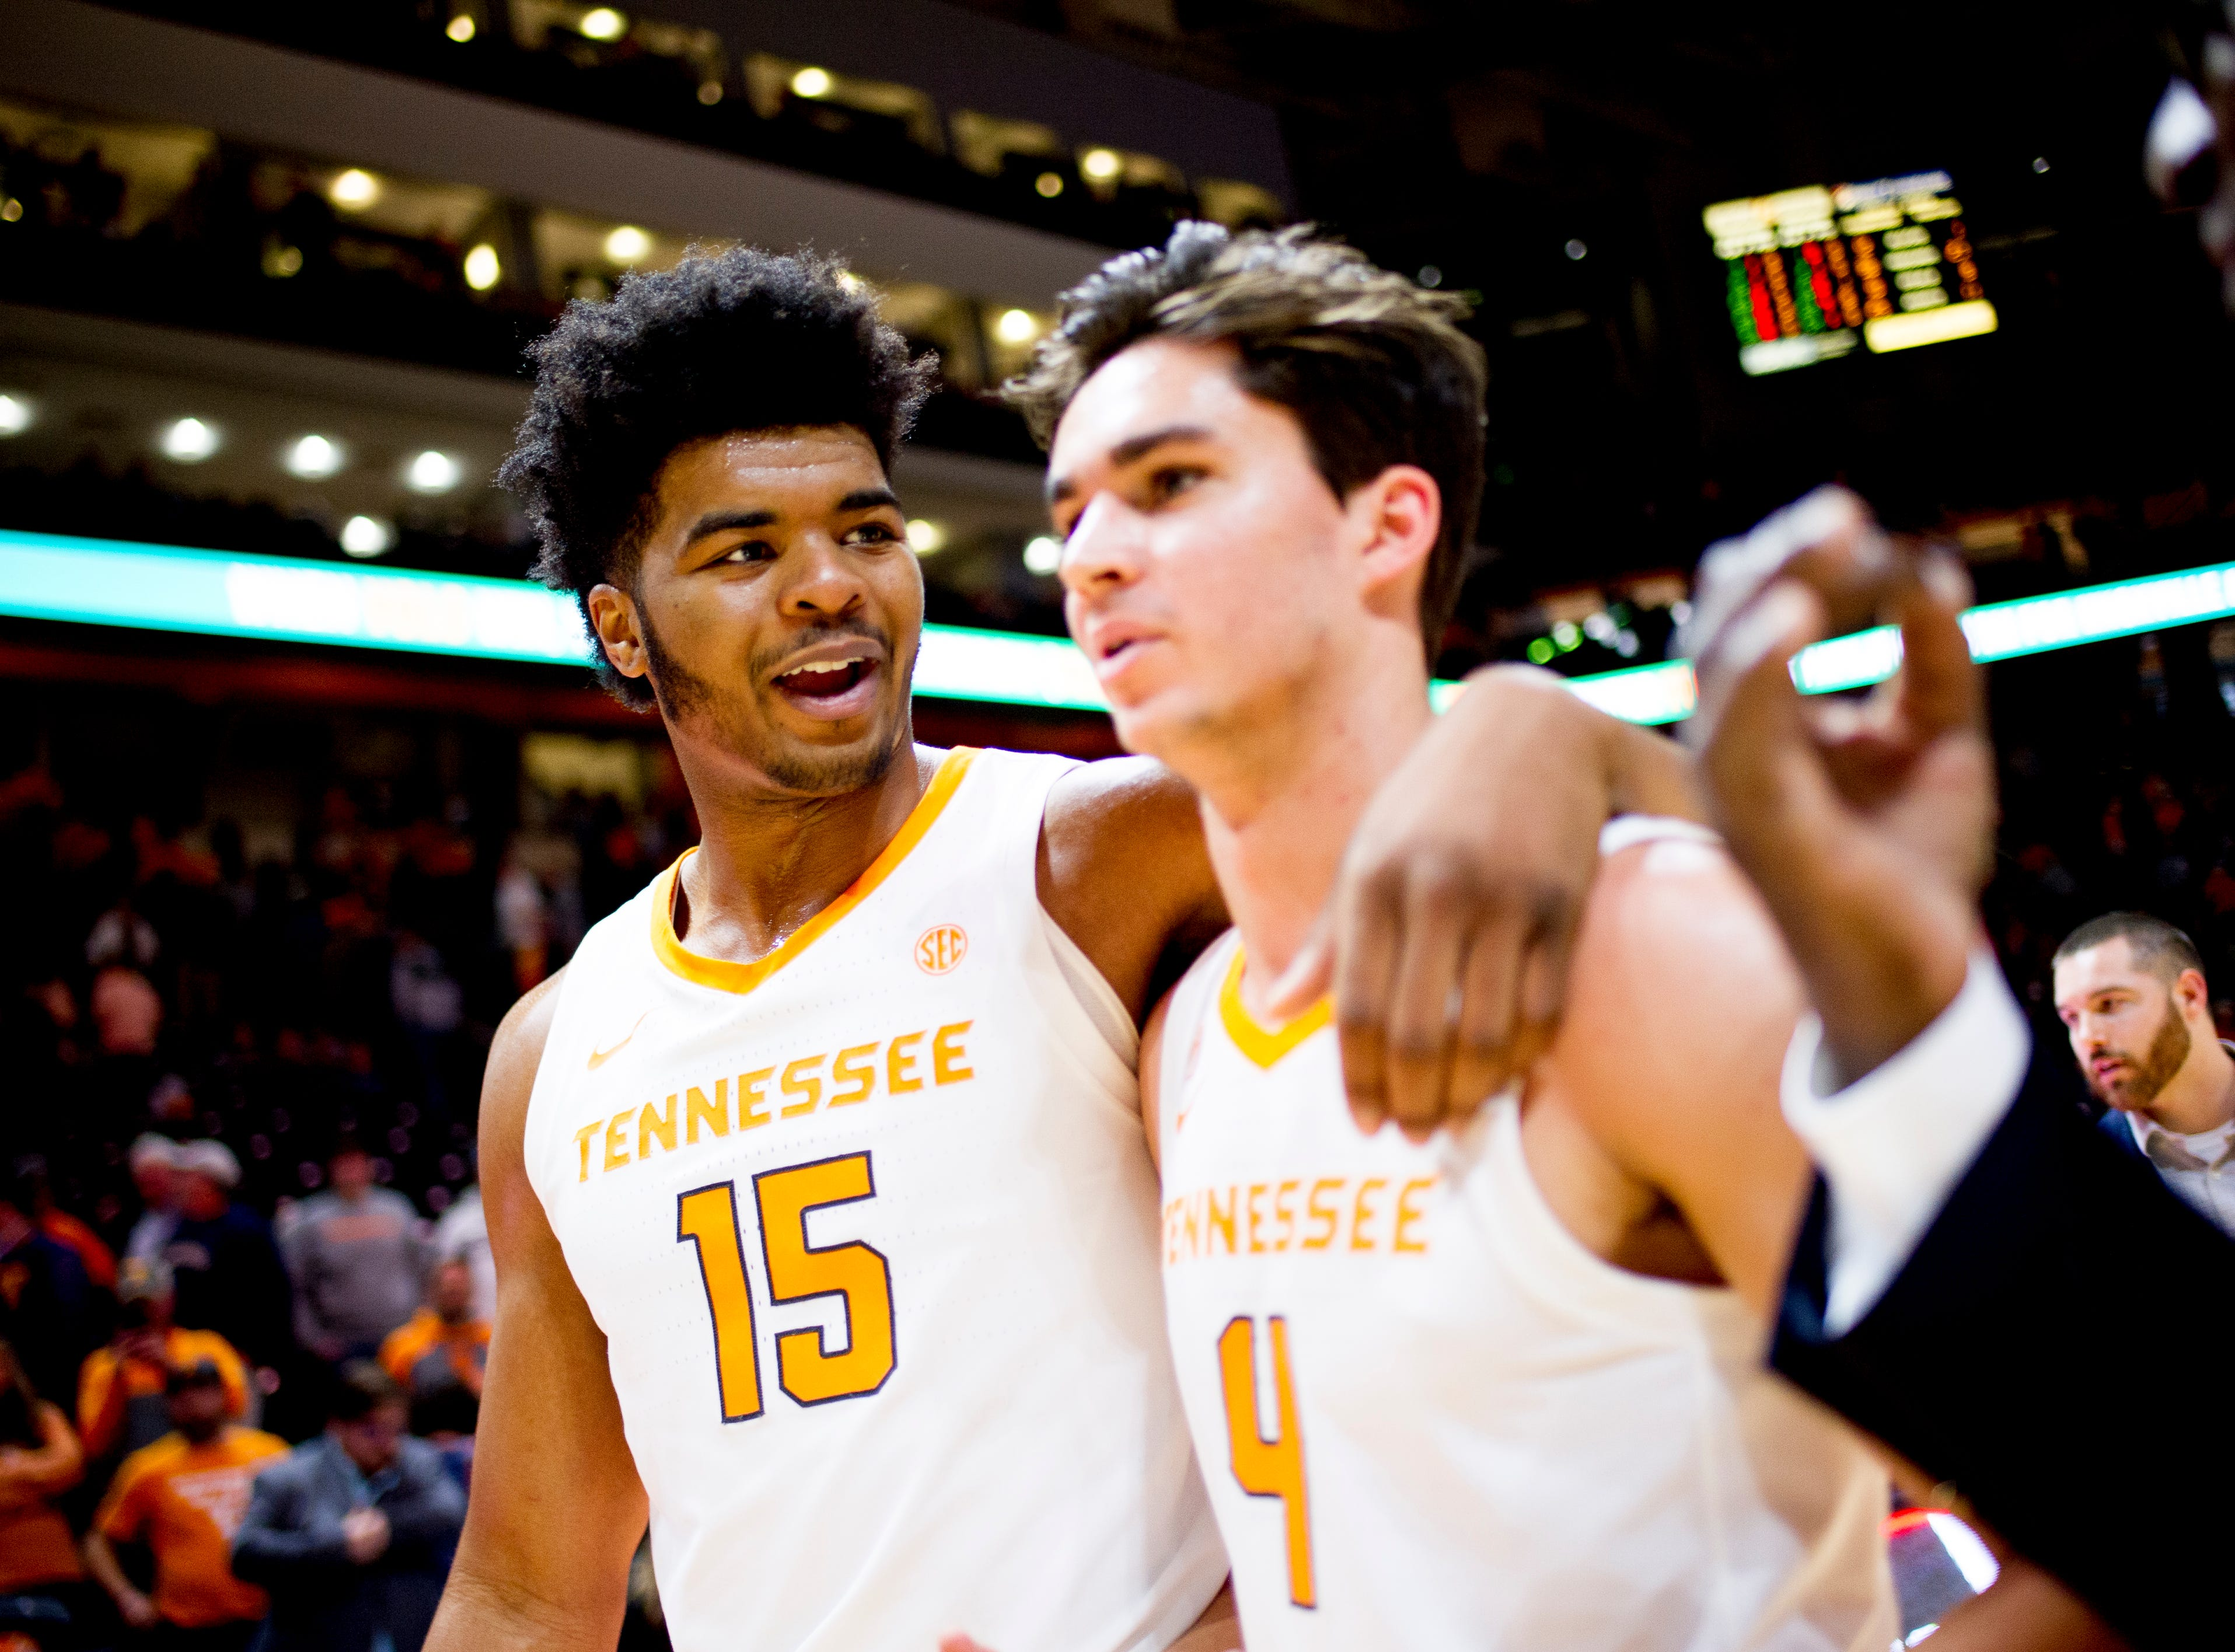 Tennessee forward Derrick Walker (15) and Tennessee guard Jacob Fleschman (4) walks off the field after Tennessee's 96-53 win over Tennessee Tech at Thompson-Boling Arena in Knoxville, Tennessee on Saturday, December 29, 2018.